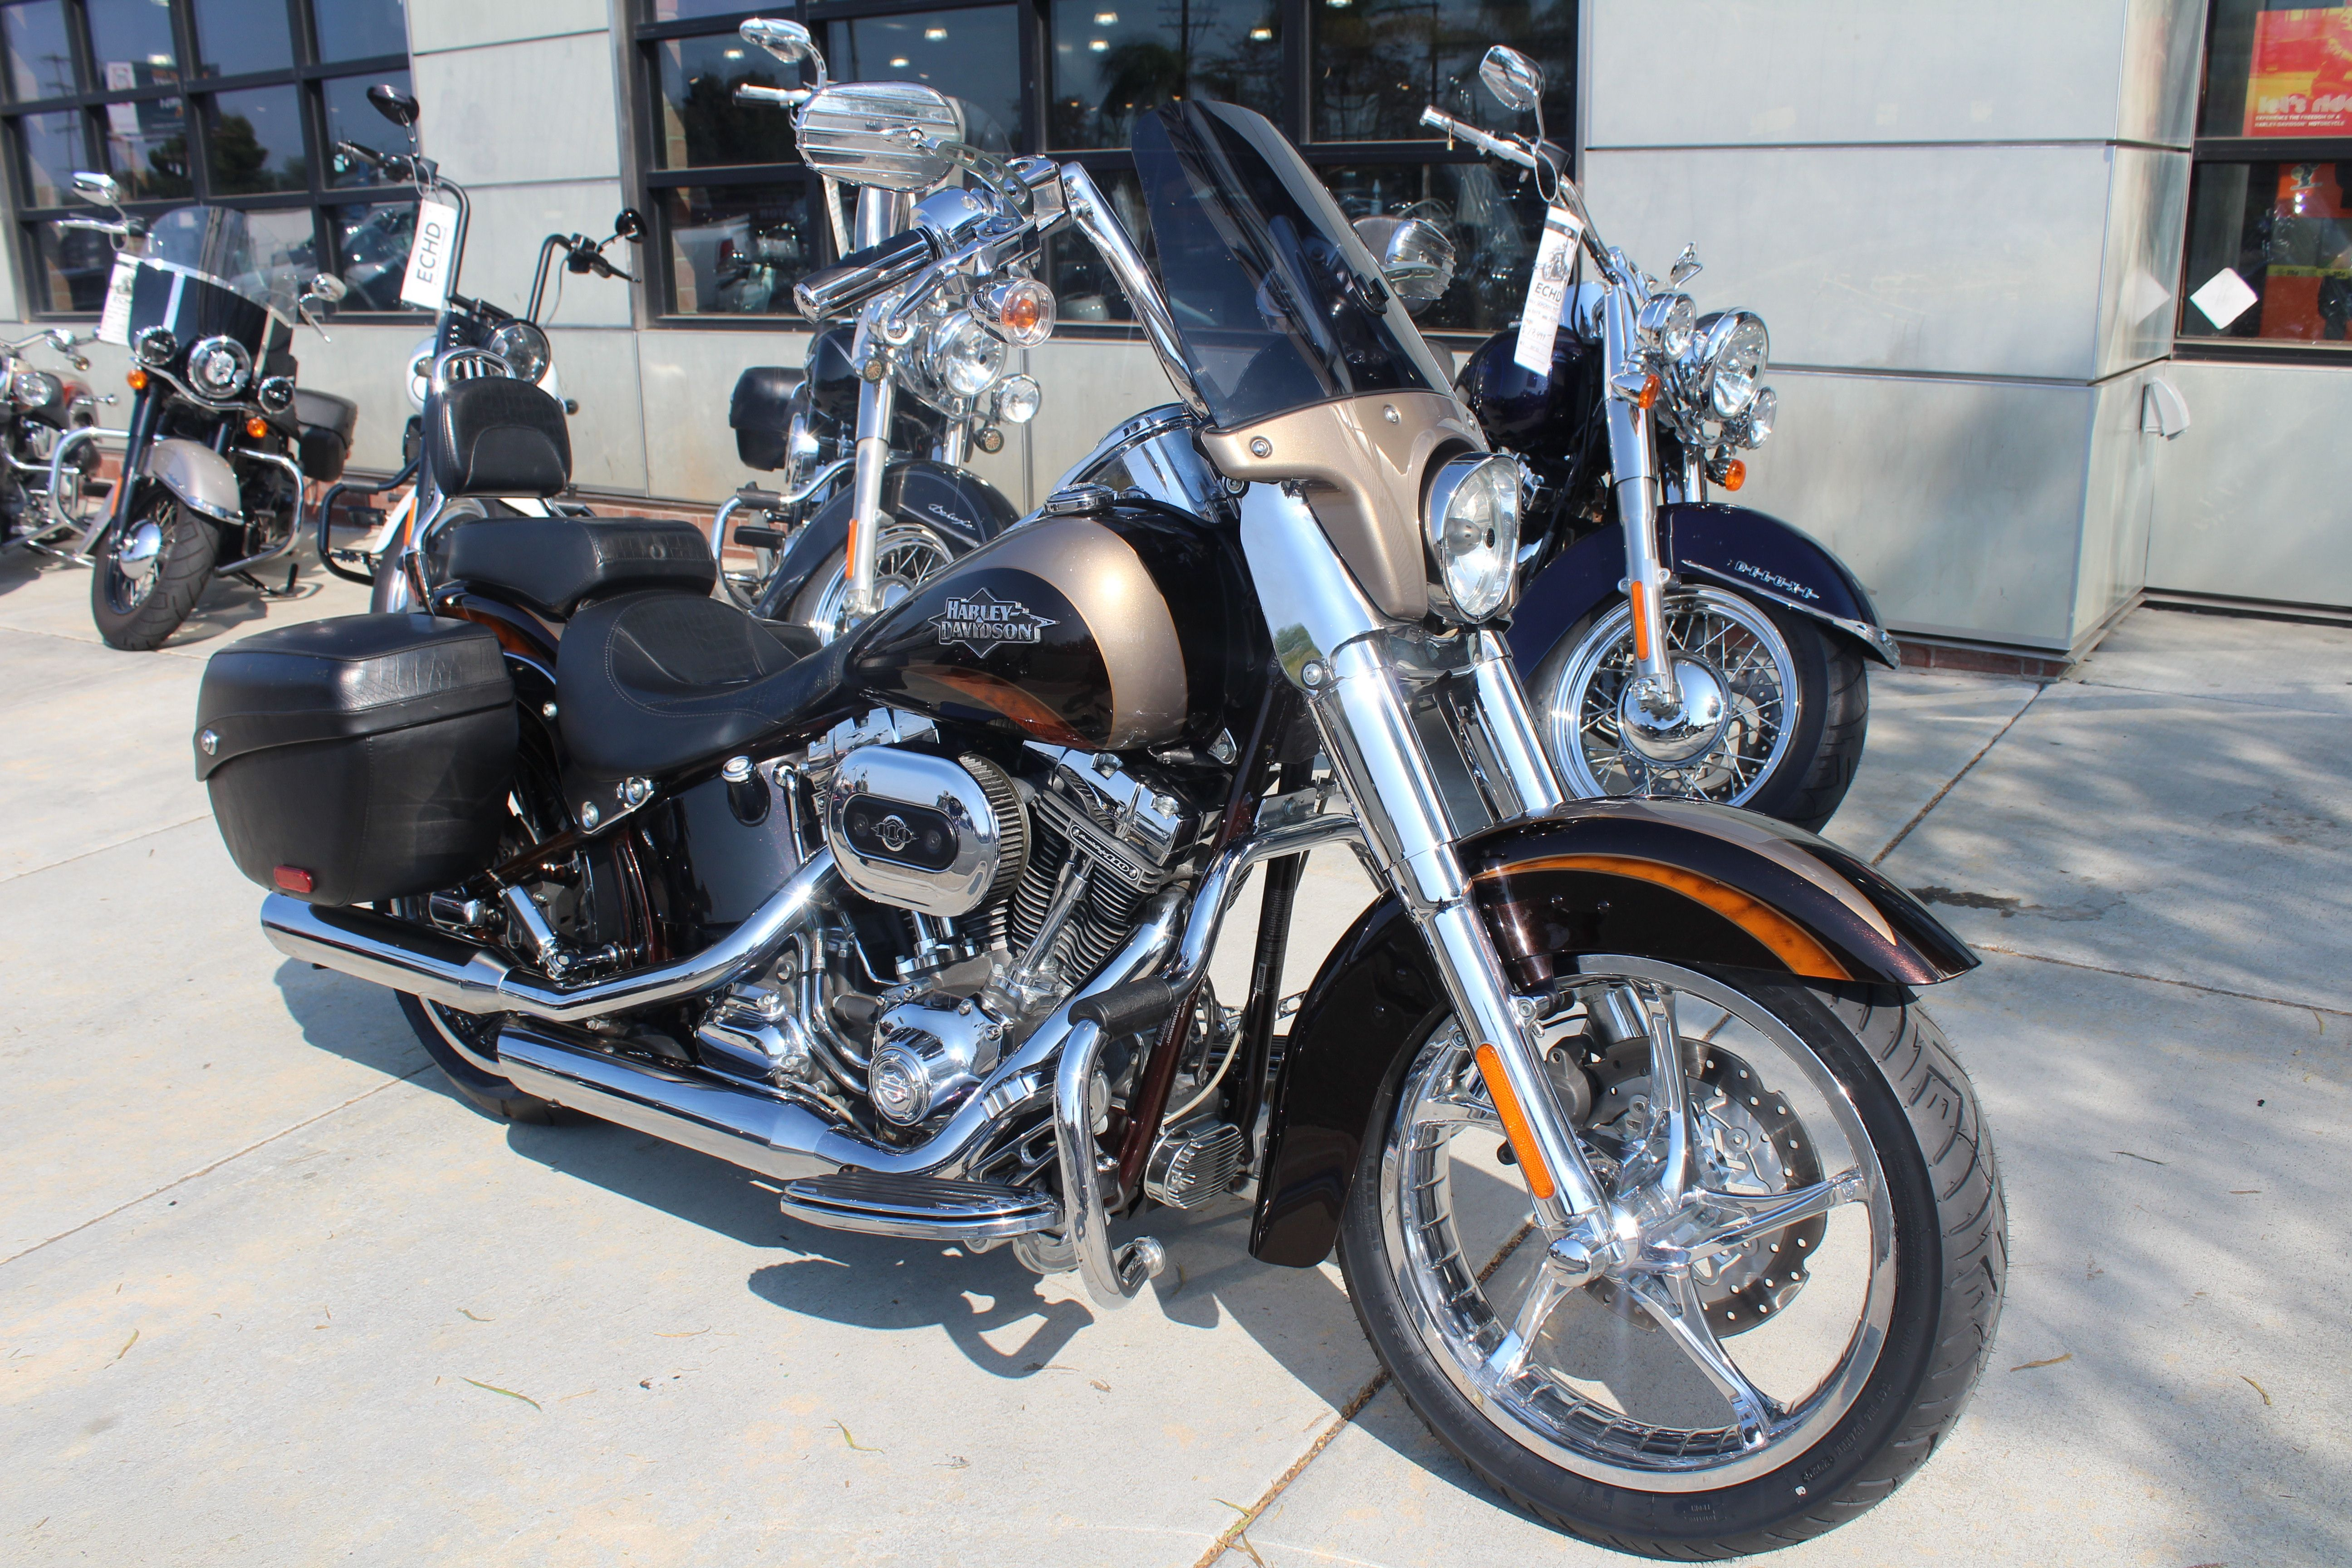 Pre-Owned 2011 Harley-Davidson CVO Softail Convertible